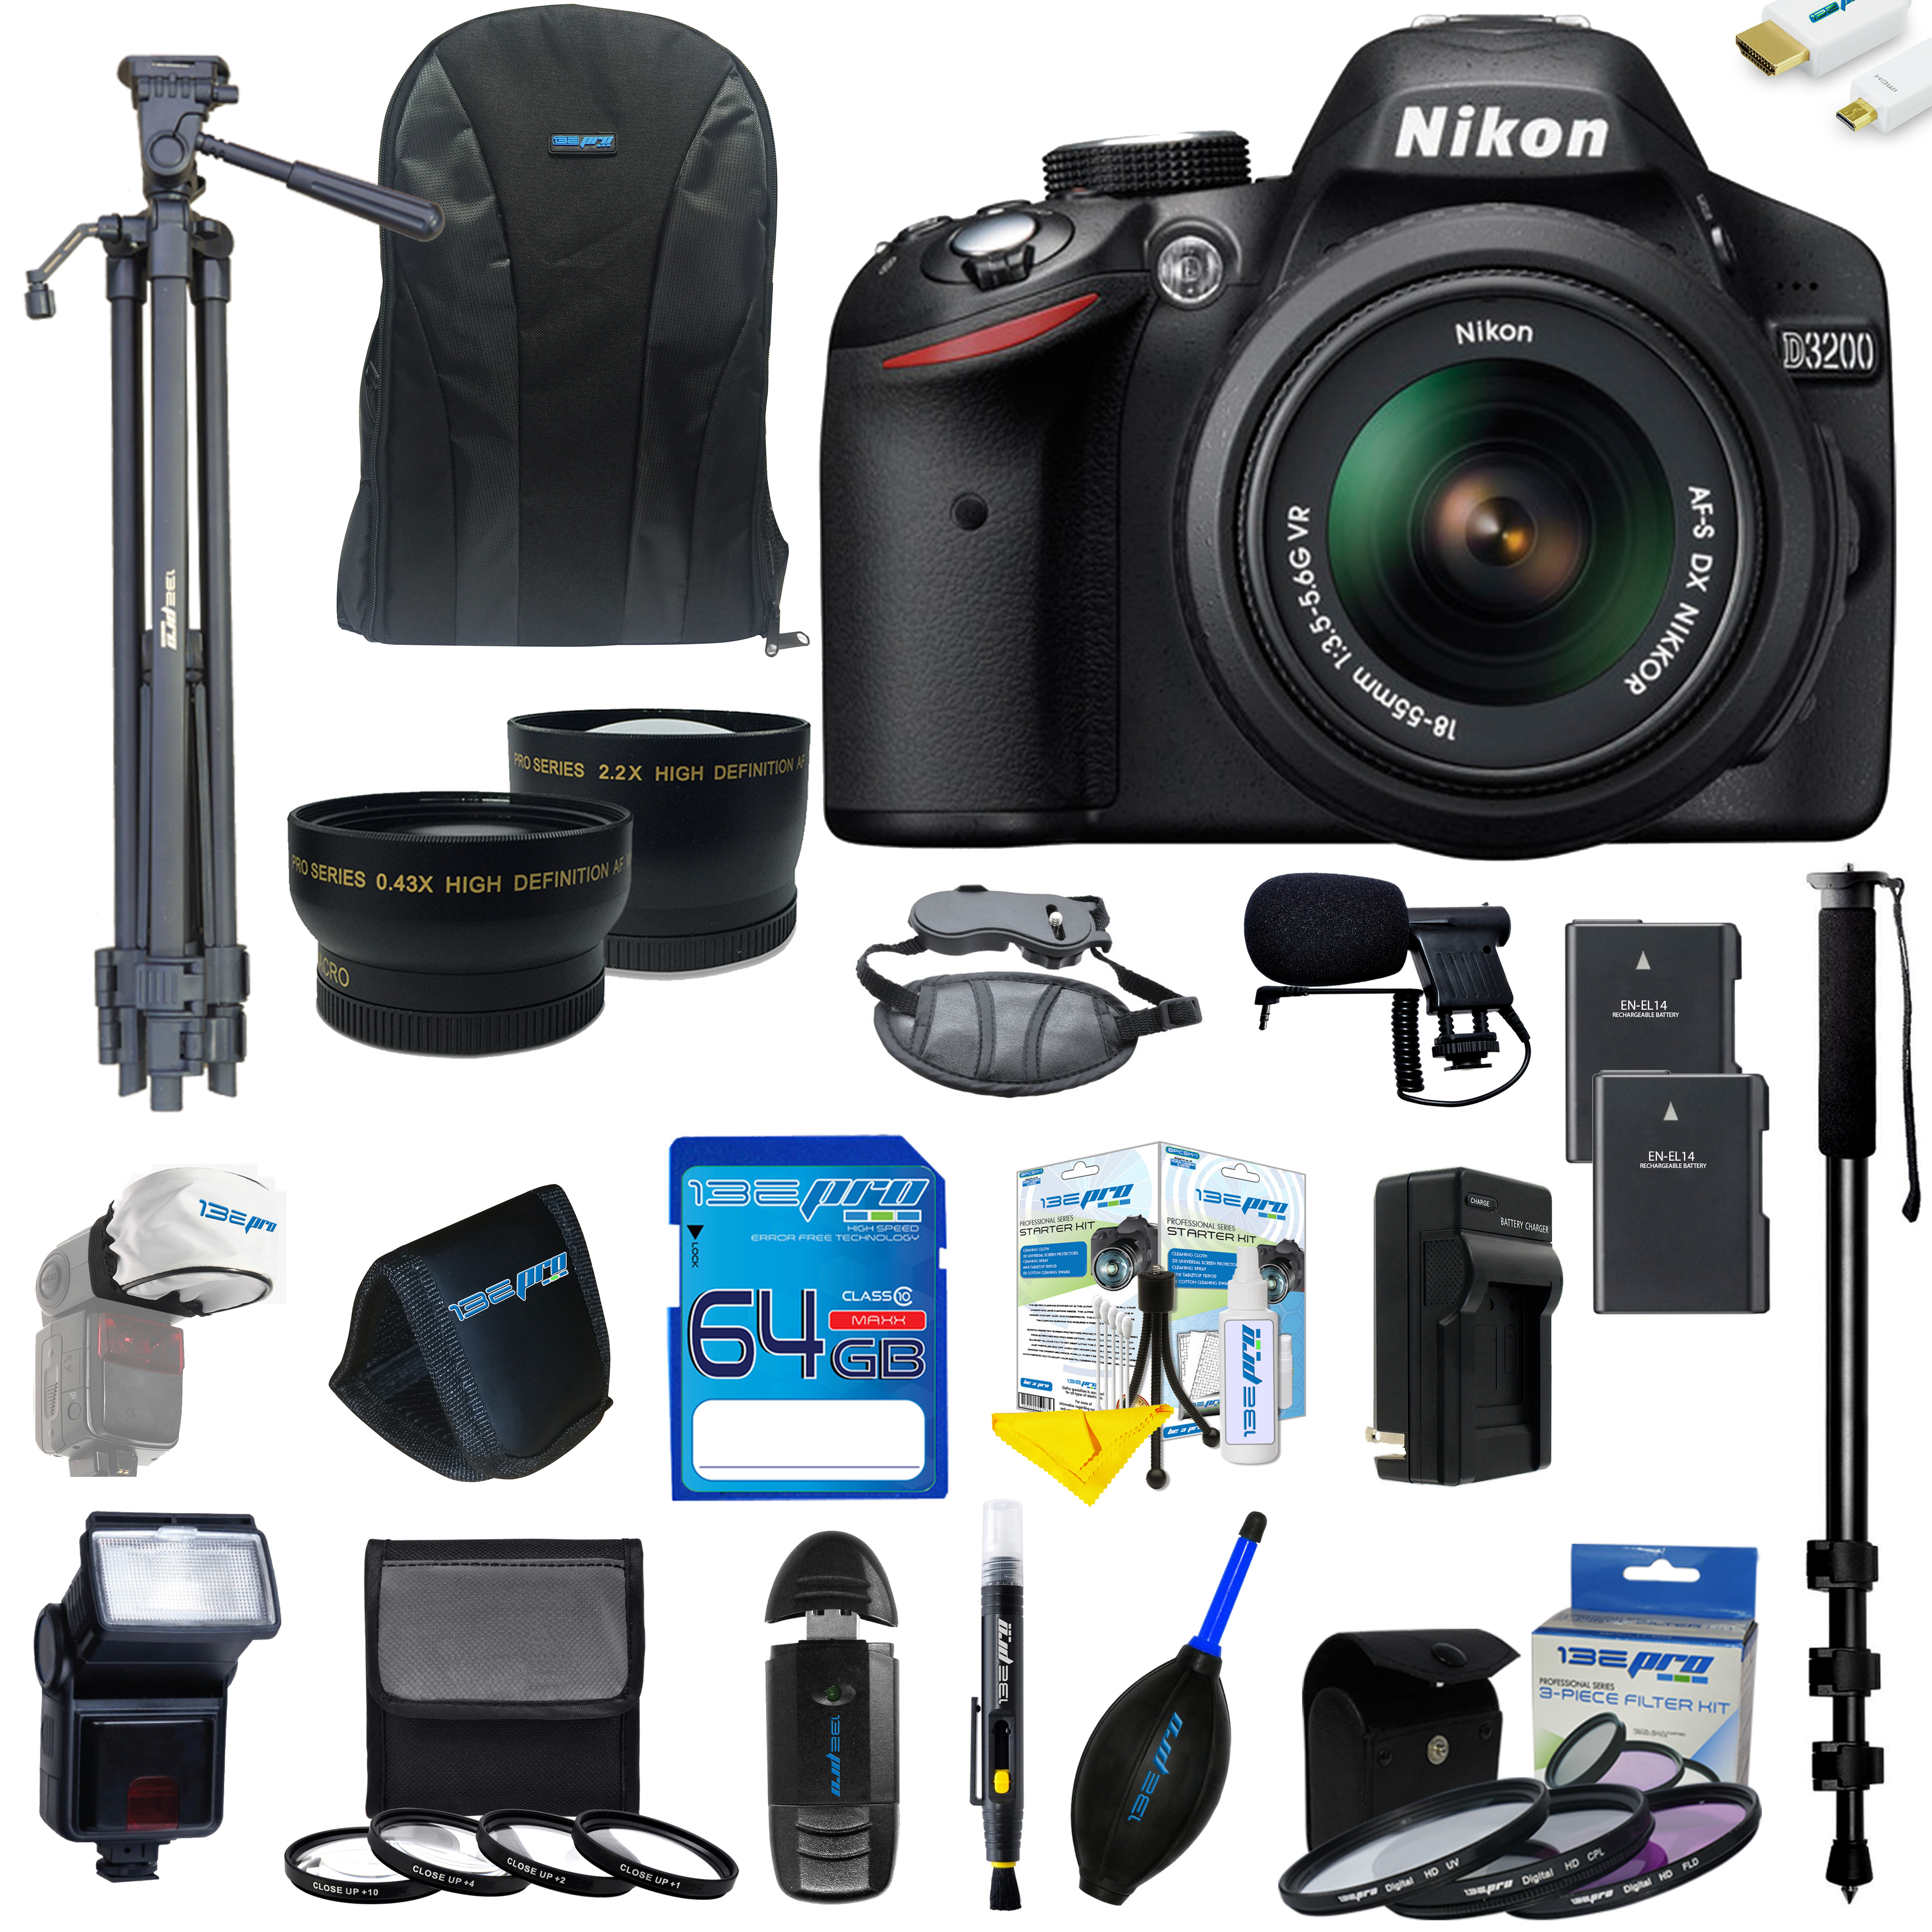 Nikon D3200 DSLR Camera with 18-55mm Lens + Pixi Ultimate Kit